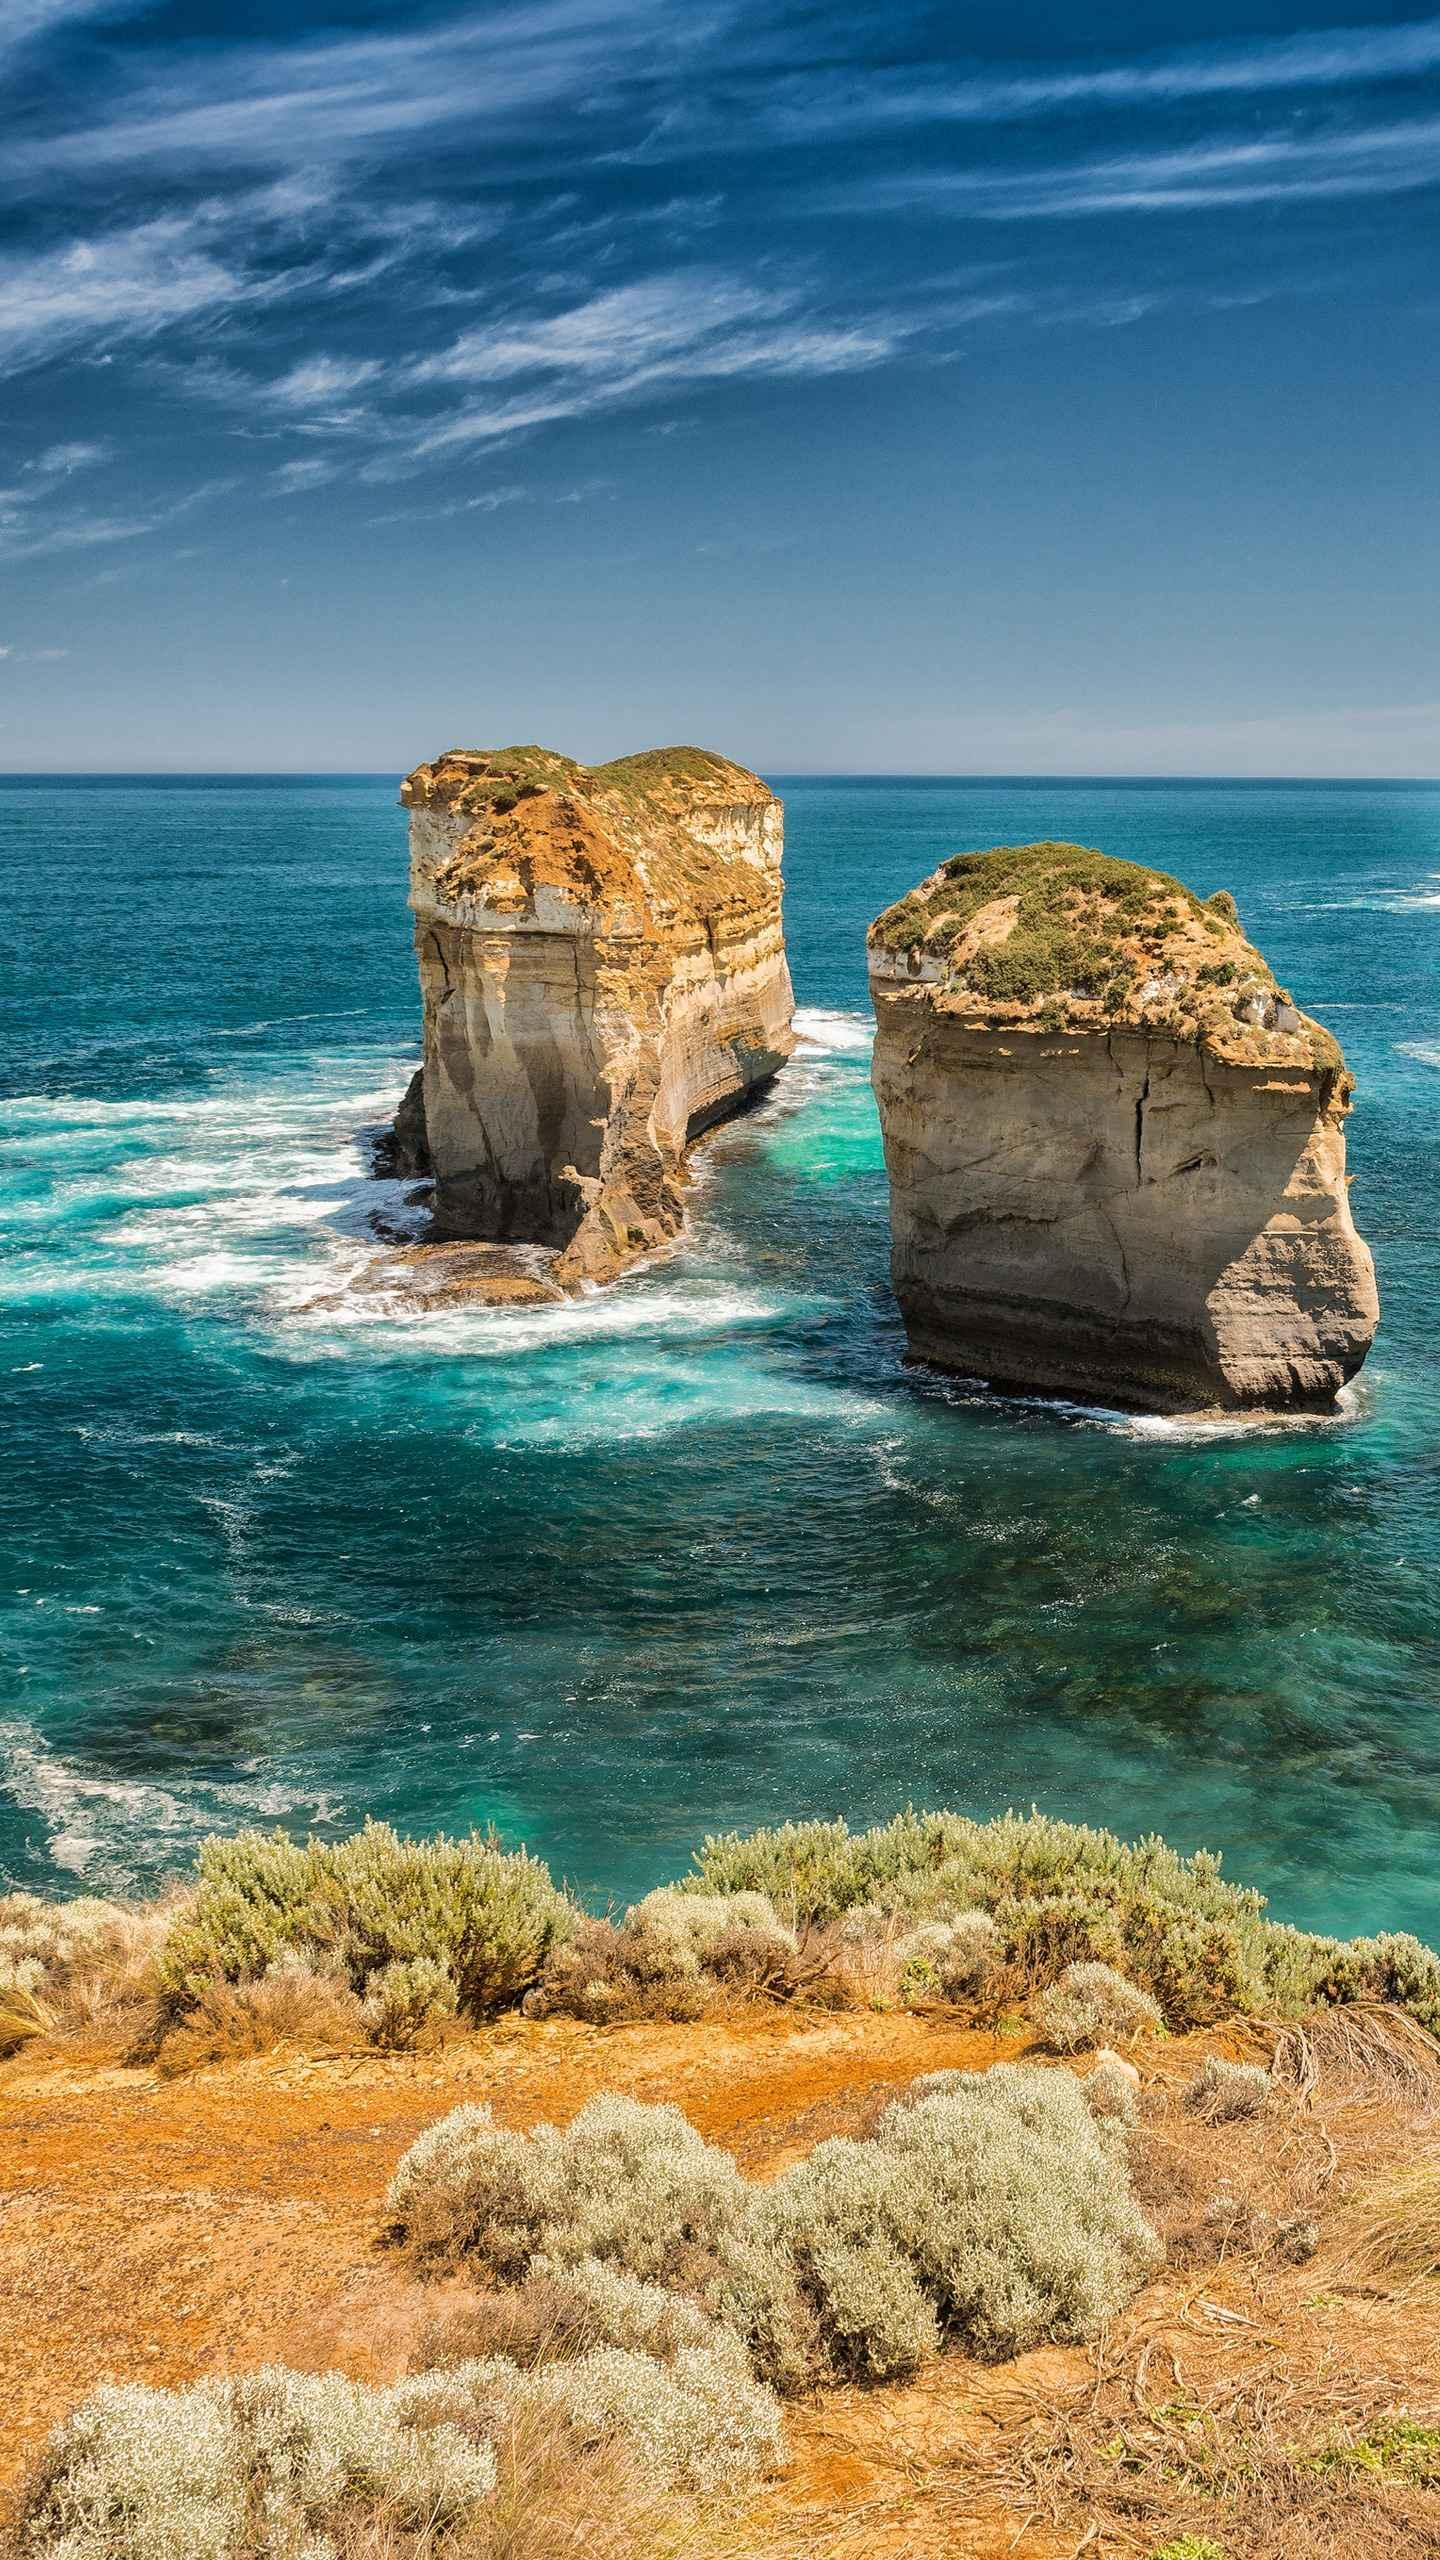 Australia's Great Ocean Road. It has passed through beaches, cliffs, rainforests and small towns and is known as the world's most beautiful coastal road.